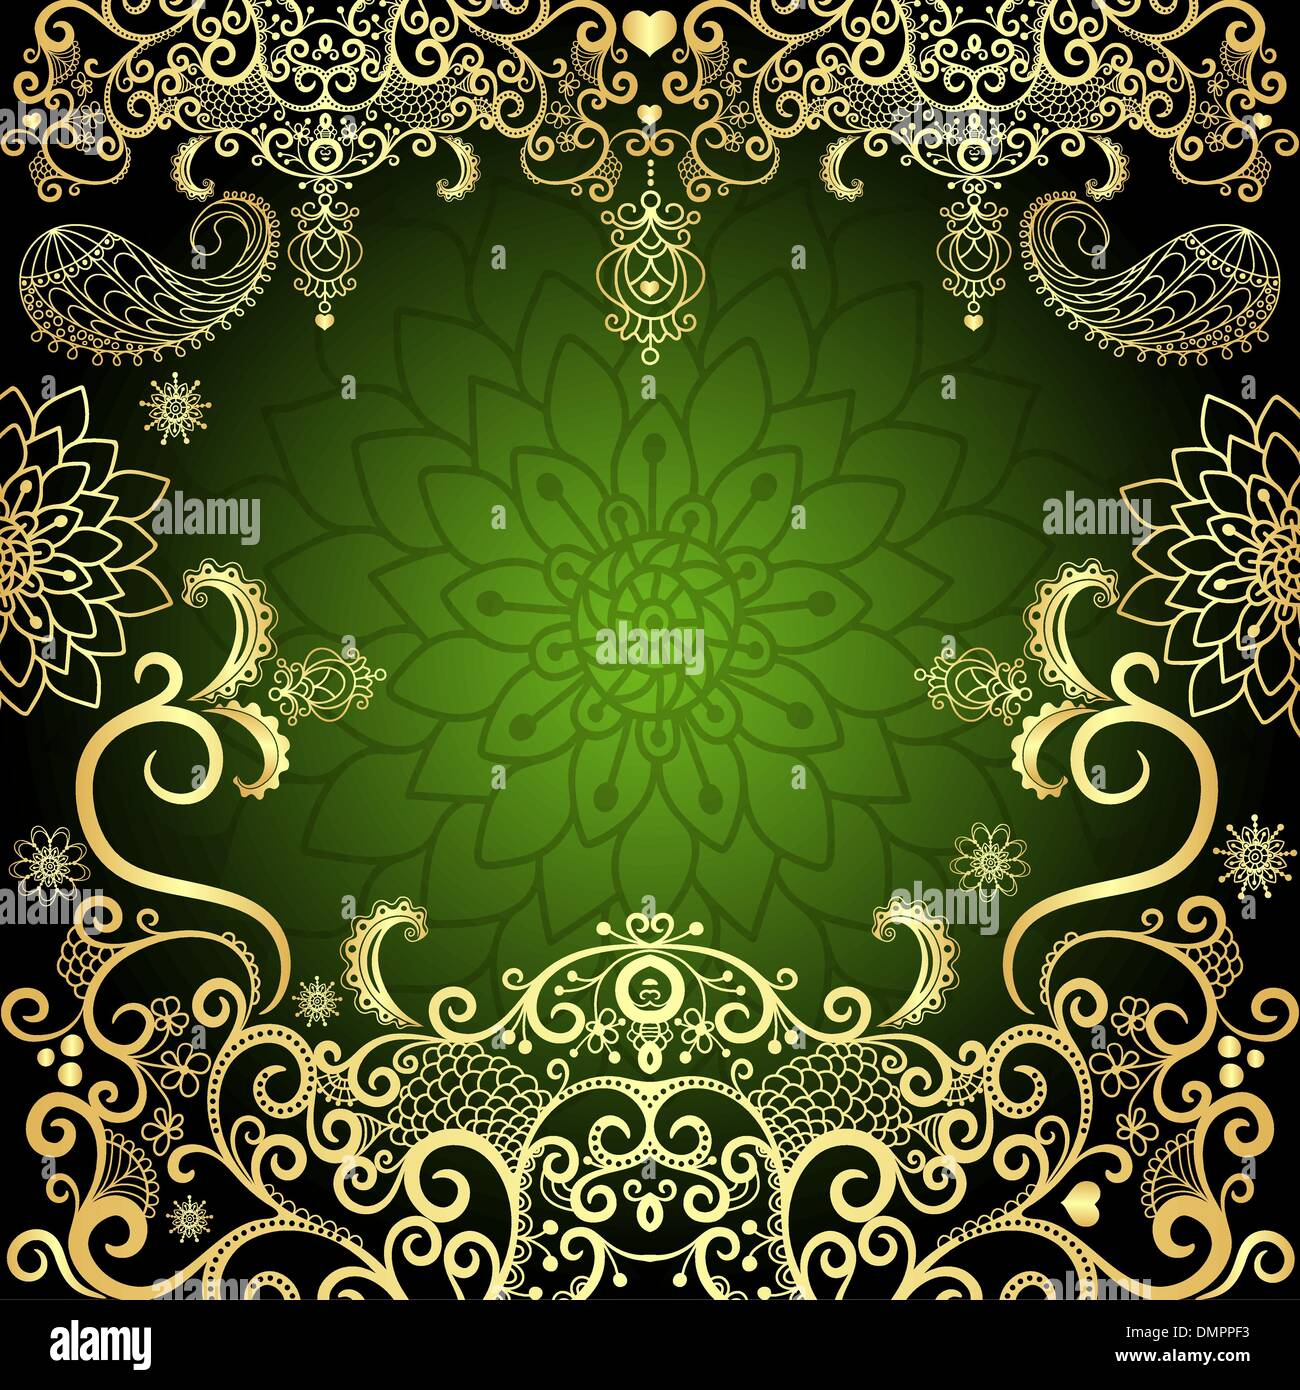 Green Gold Vintage Floral Frame Stock Vector Art Illustration